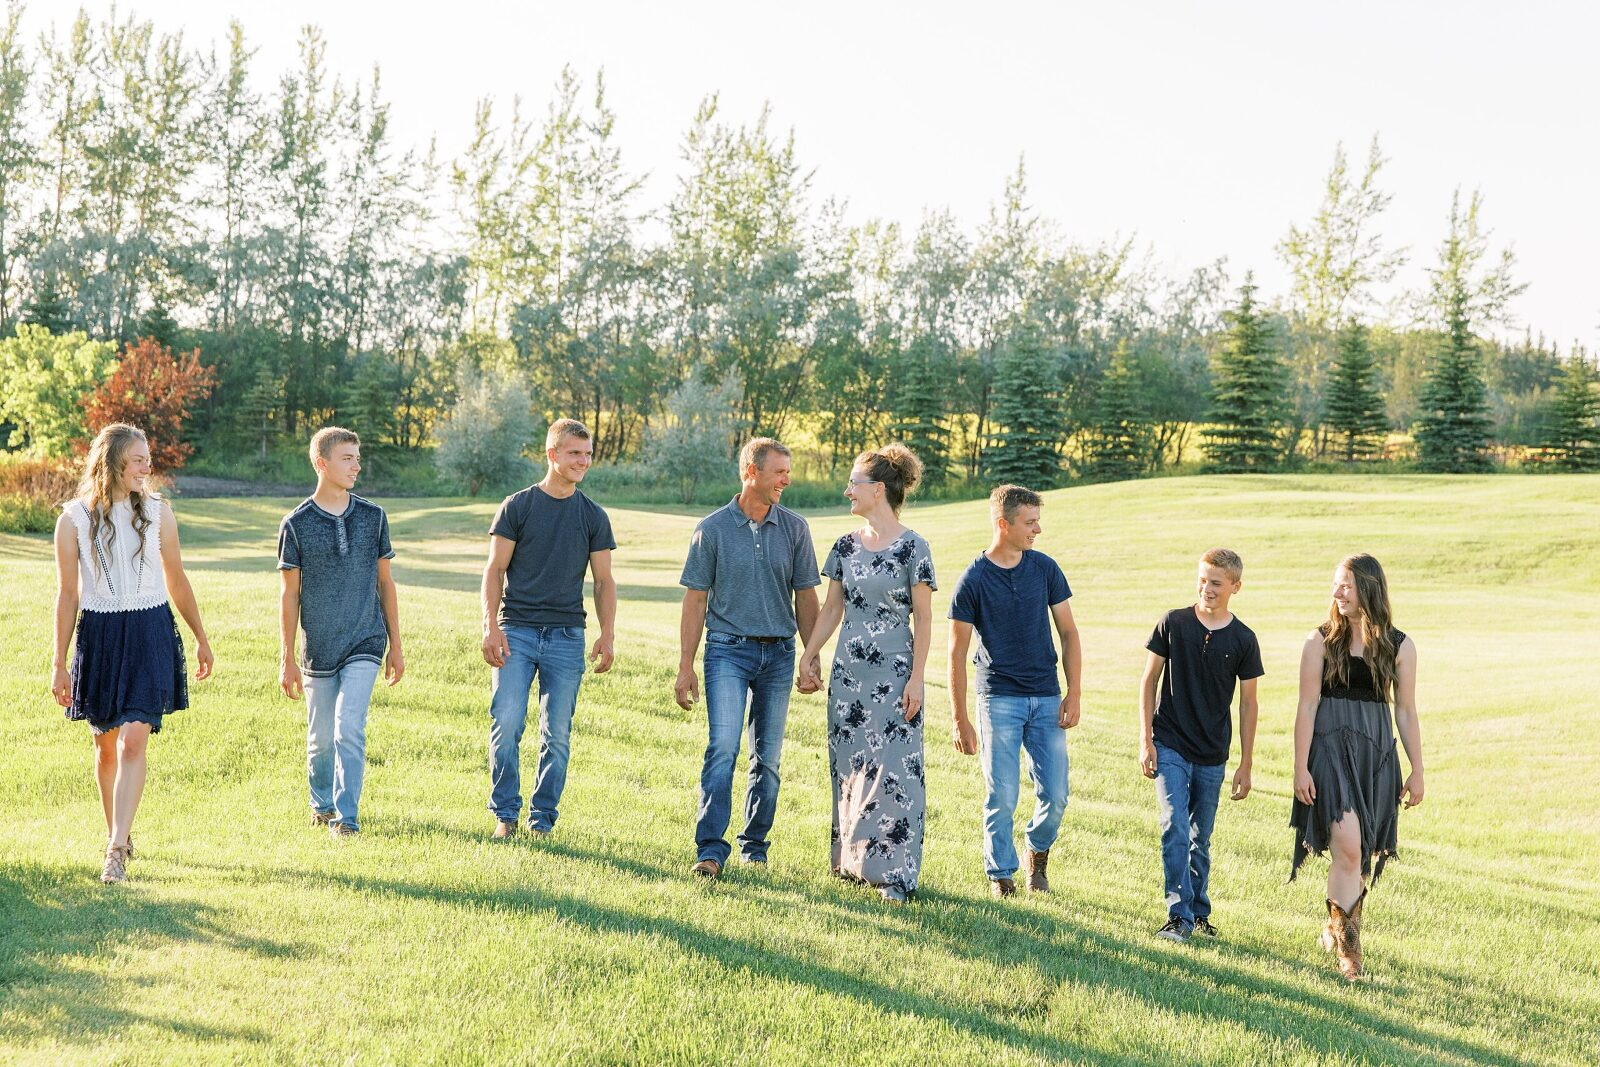 BEAUTI photography Tribune Saskatchewan portrait wedding photographer family lifestyle photographer family portraits